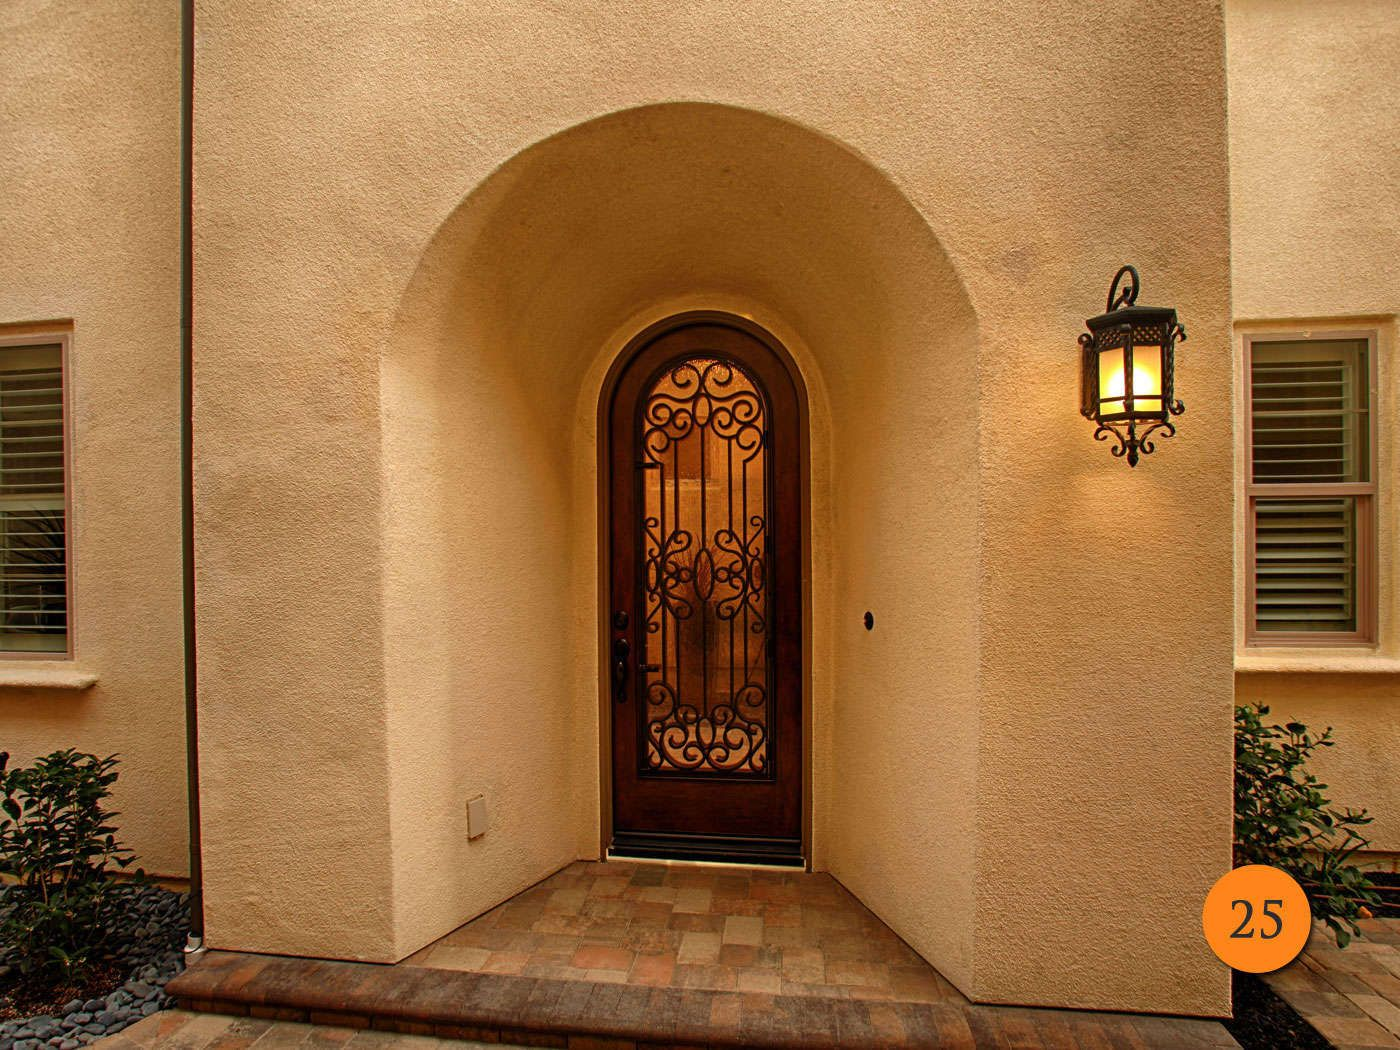 Entry doors gallery 2 todays entry doors palo santo designs rustic style x sized single entry fiberglass door jeld wen aurora model full glass arched top door with exterior wrought iron grille planetlyrics Images